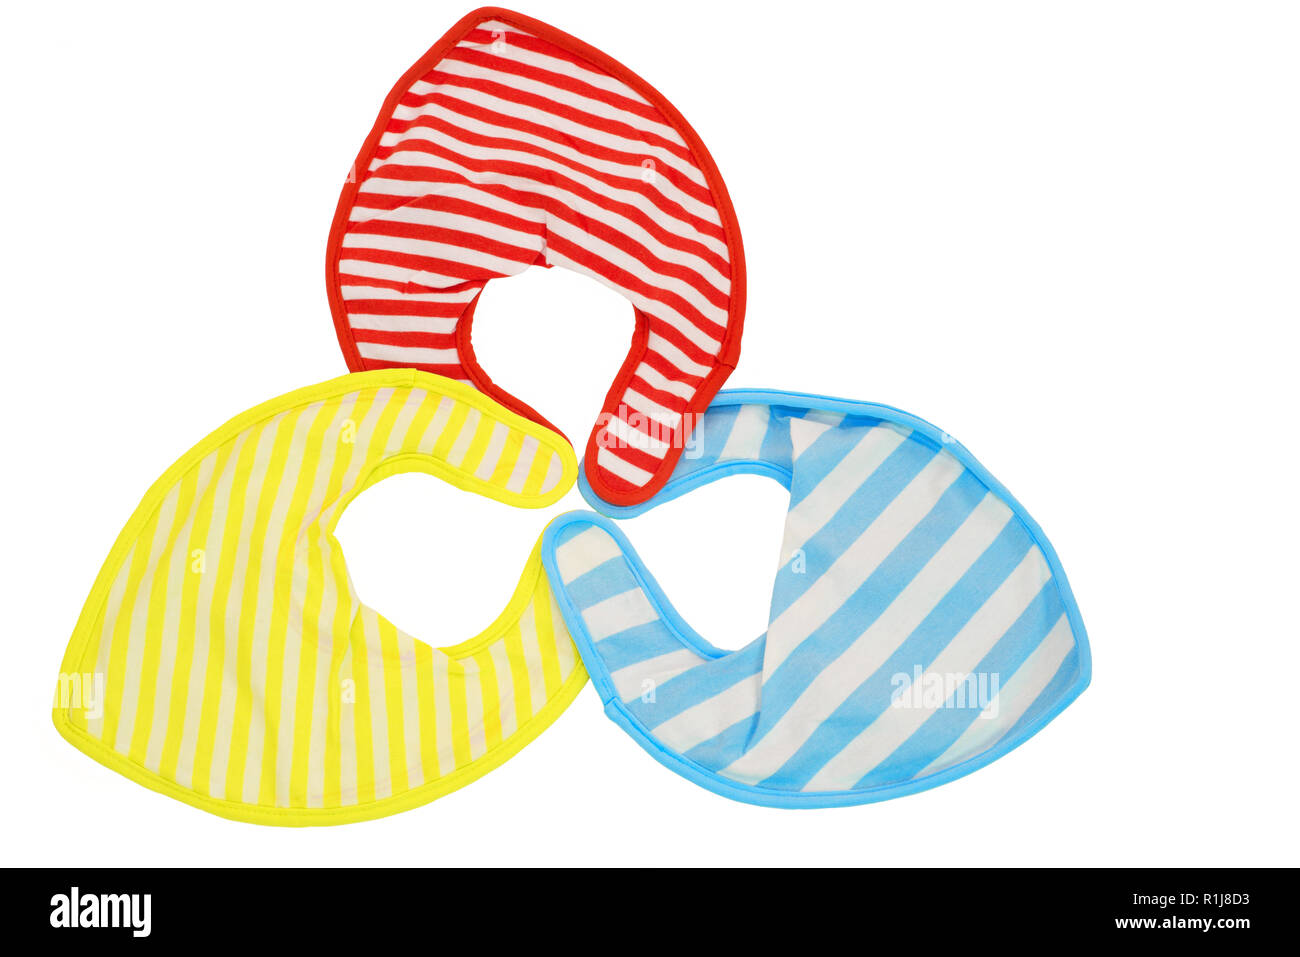 Red, yellow and blue isolated baby bibs - Stock Image